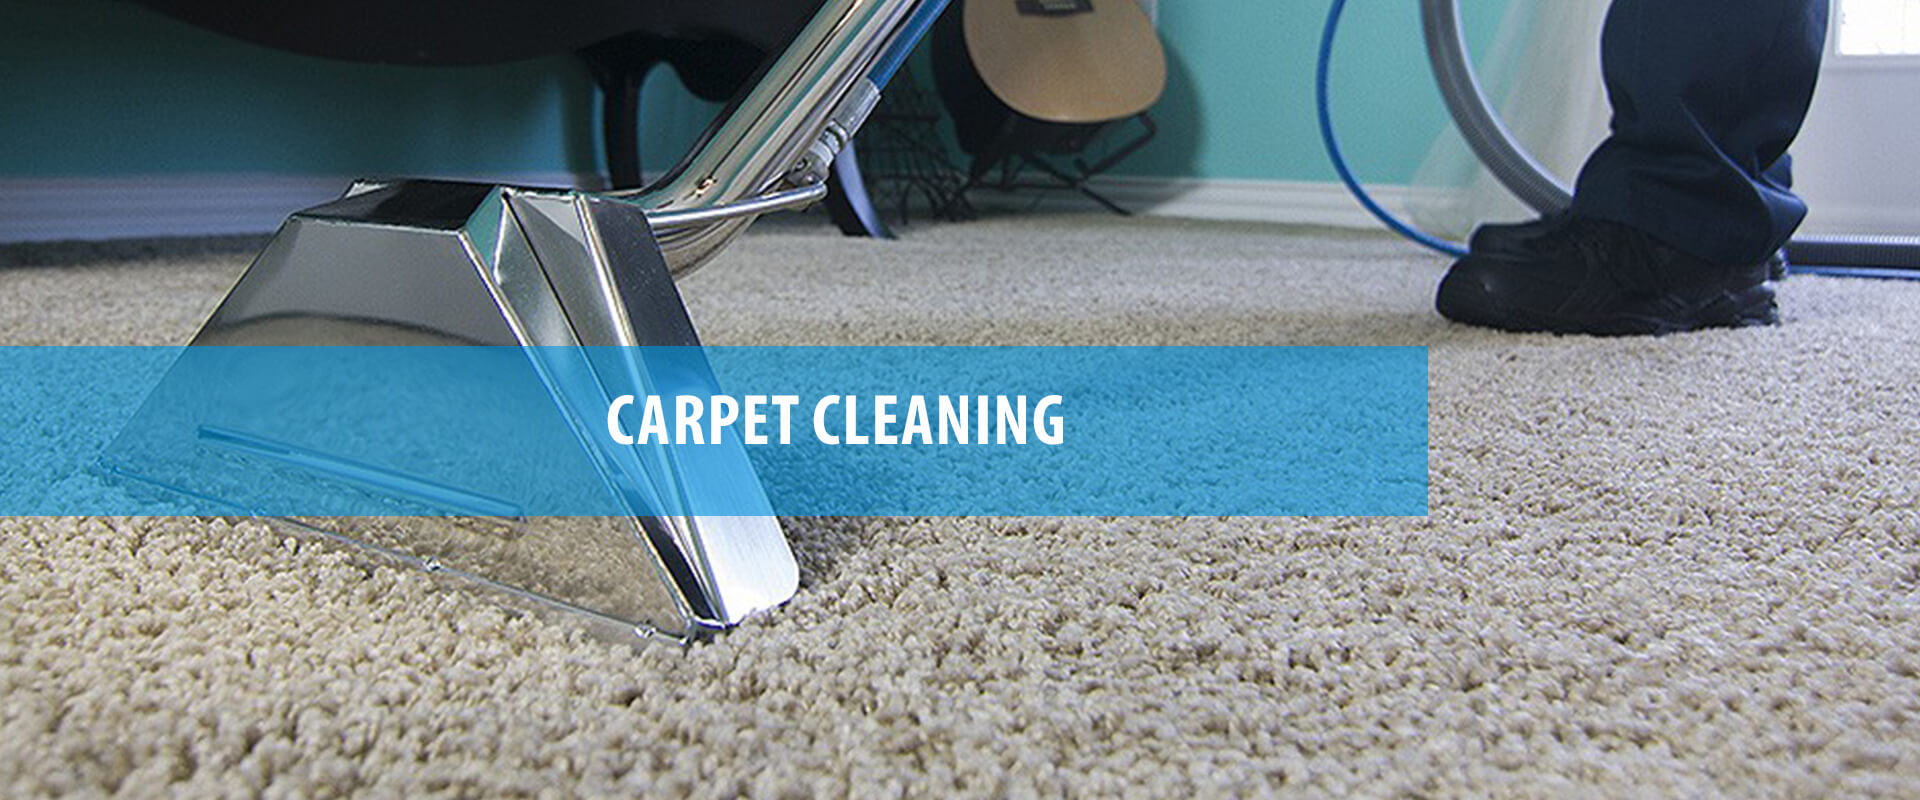 Home carpet cleaning services in Fairlight